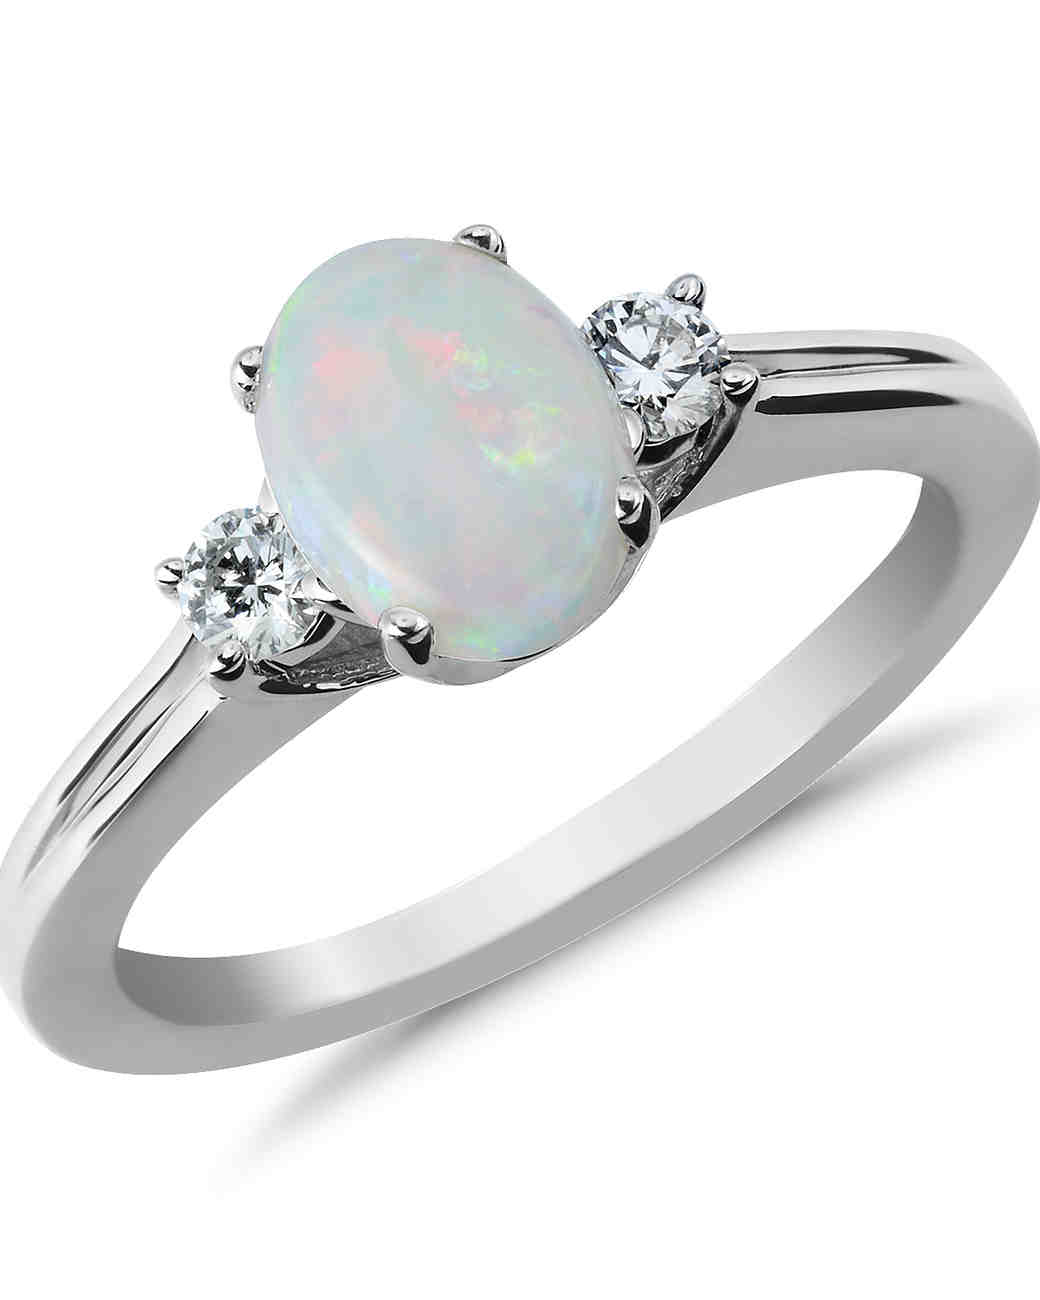 Opal Engagement Rings 25 Unique Opal Engagem...